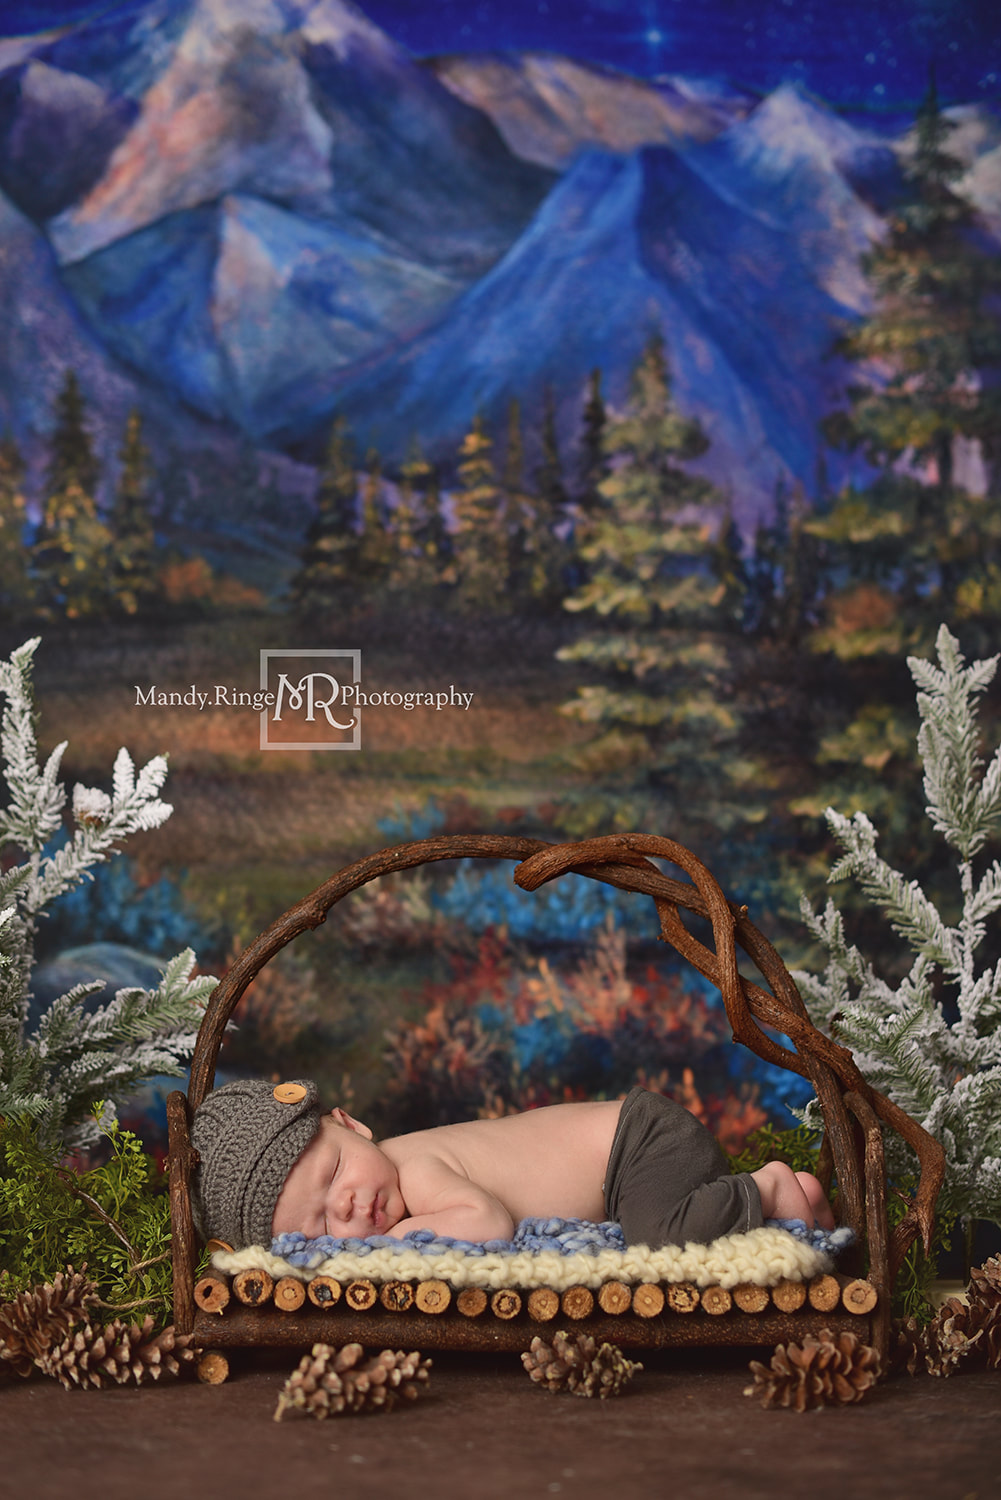 Newborn boy portraits // Fake pine trees, pinecones, twig bed, Under the Stars from Baby Dream Backdrops, Dirt Floordrop, Intuitions Backgrounds // St. Charles, IL studio // by Mandy Ringe Photography